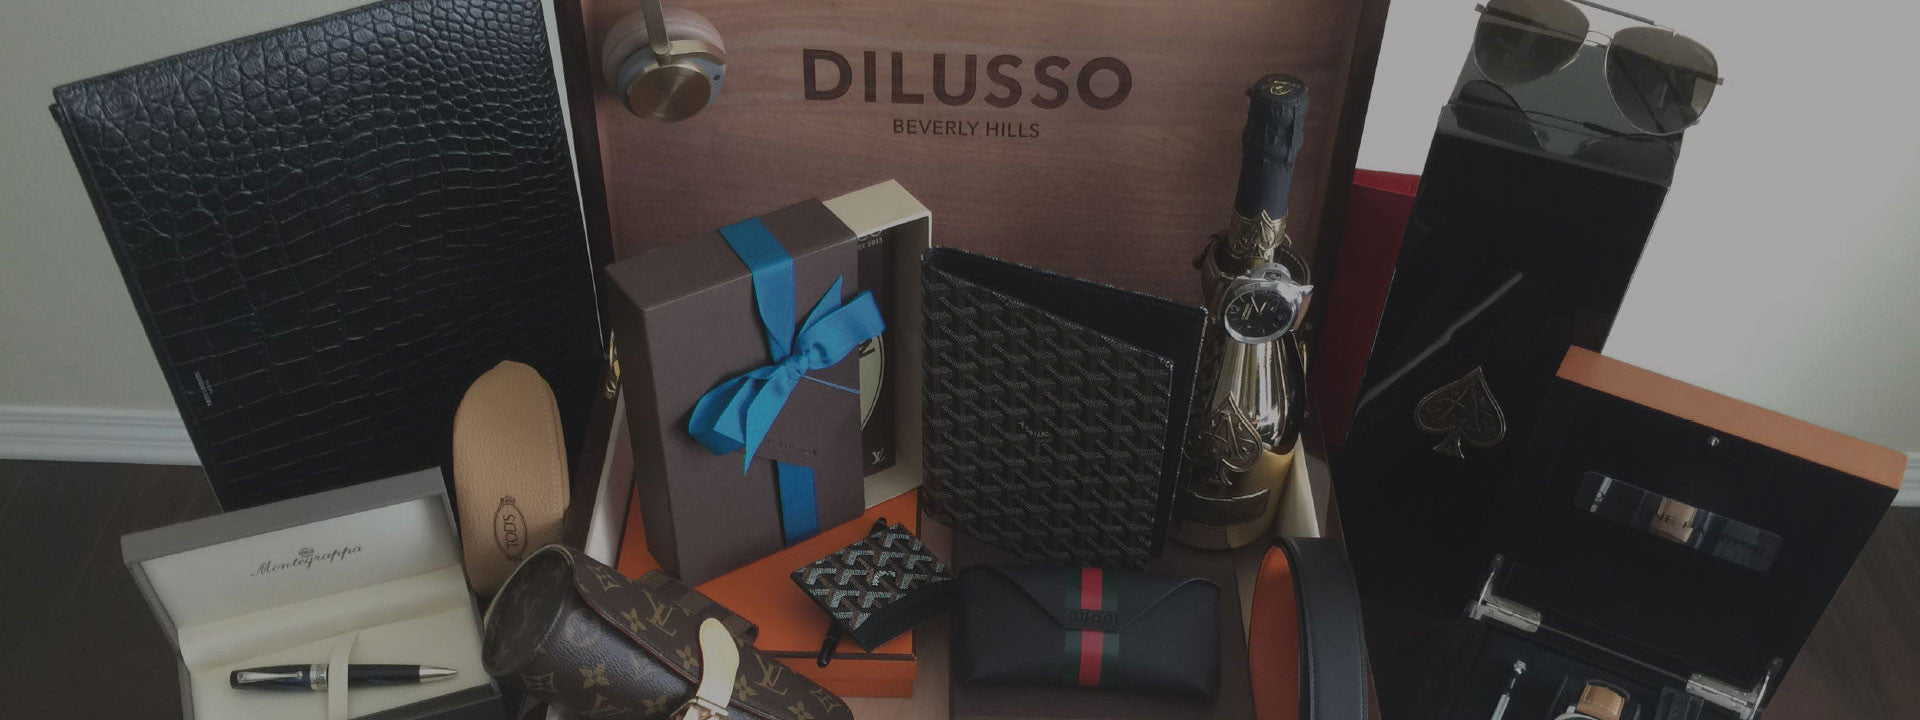 The Luxury Surprise Box for Men